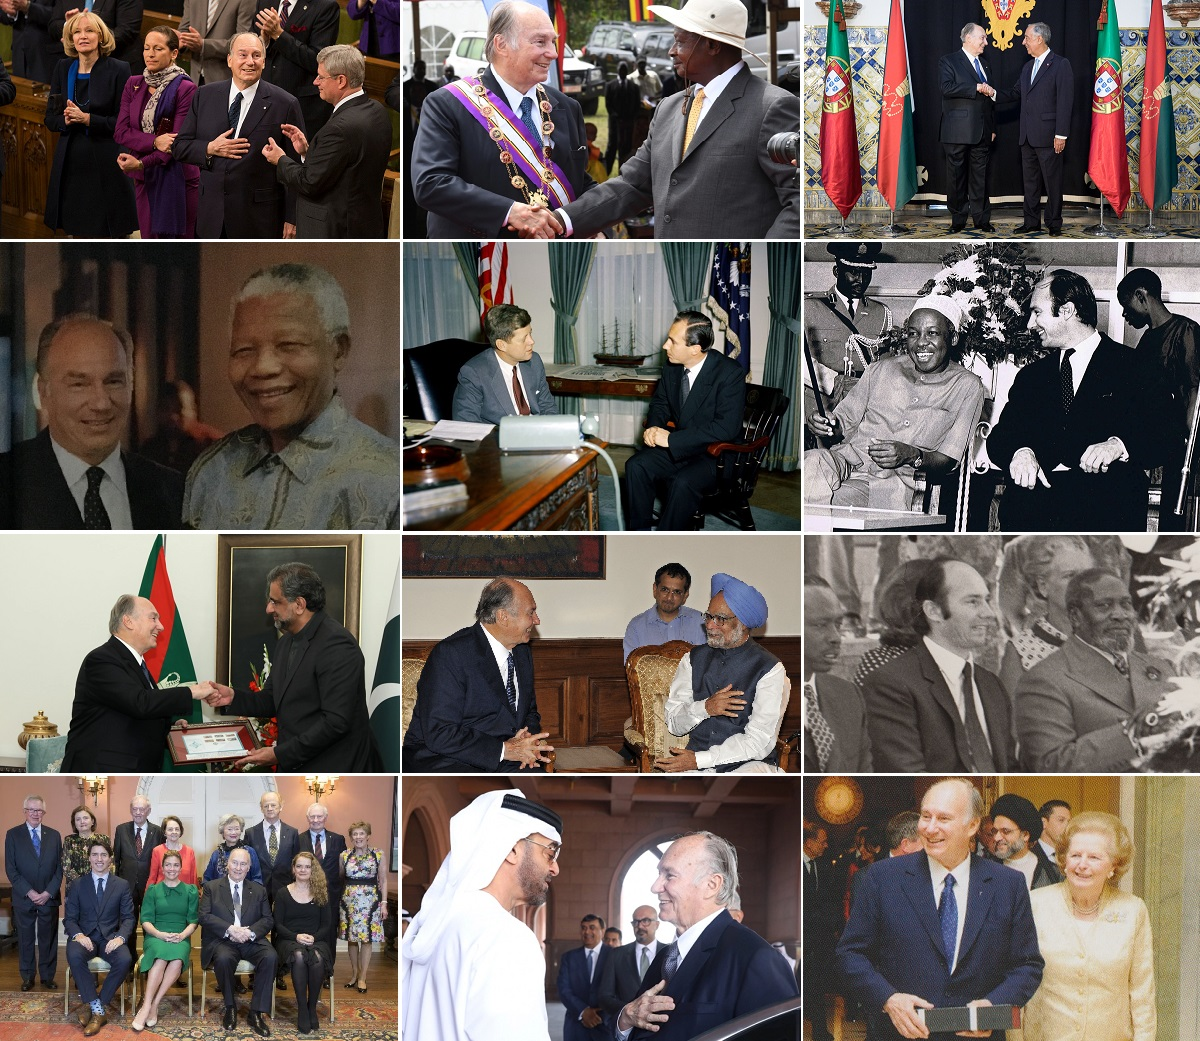 Aga Khan with world leades, Kennedy, Mandela, Nyerere, Kenyatta, Thatcher, Musevini, Parliament of Canada, Harrper, Trrudeau